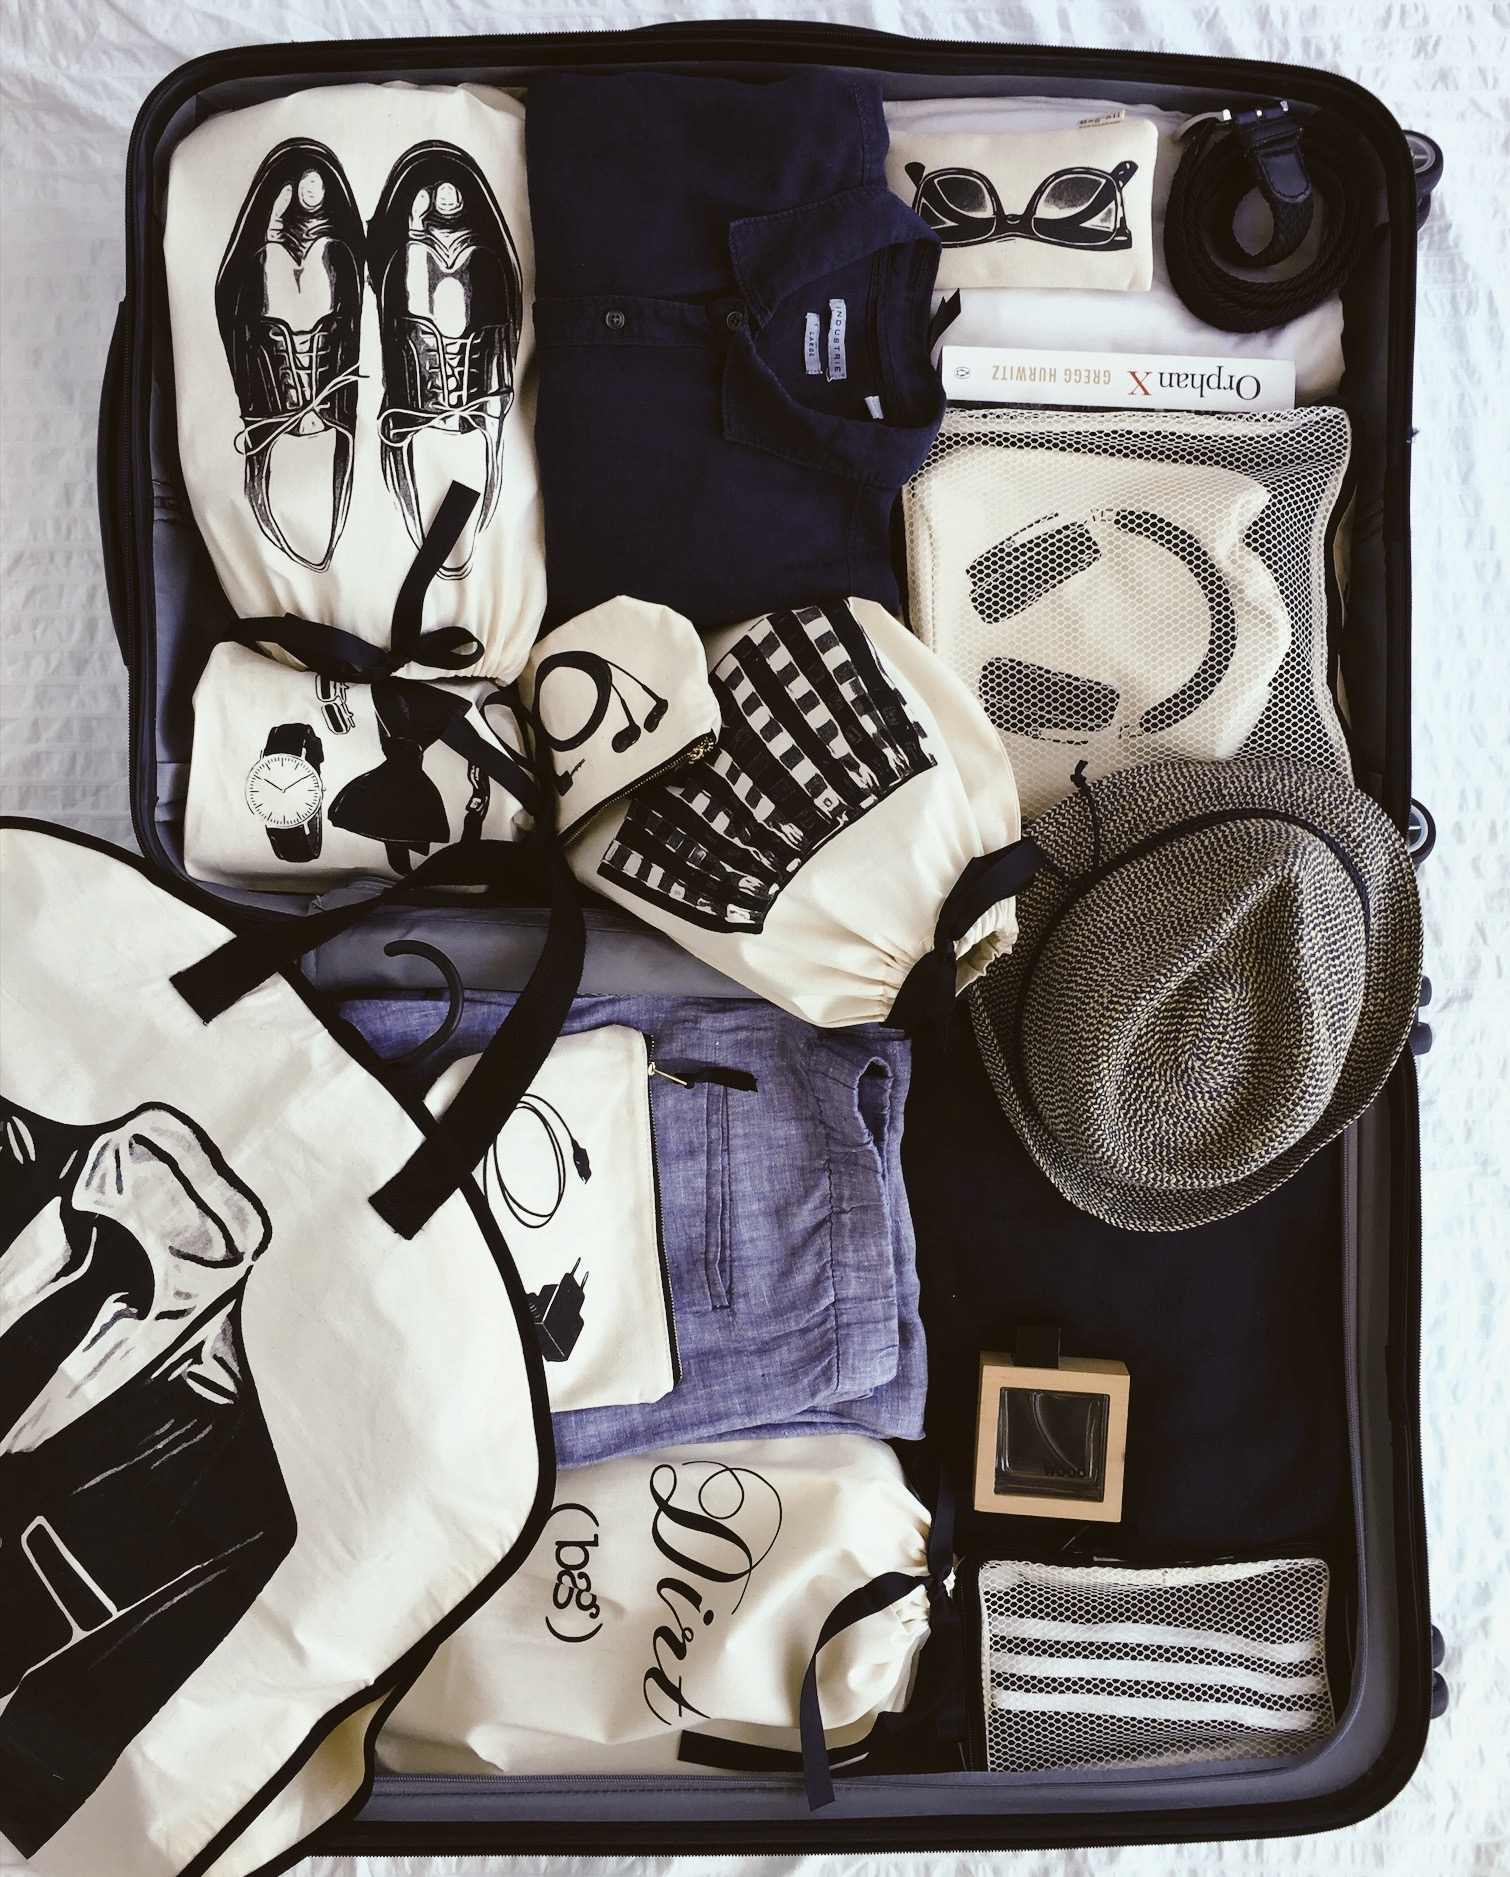 What are your best packing tips? - To be honest, I am a terrible person when it comes to packing. I do it the very last minute and I am always worried I've packed too much, too little or simply packed wrong things. But Bag-all's Packing cubes make it so much easier and I don't go anywhere without my NYC Laundry bag.